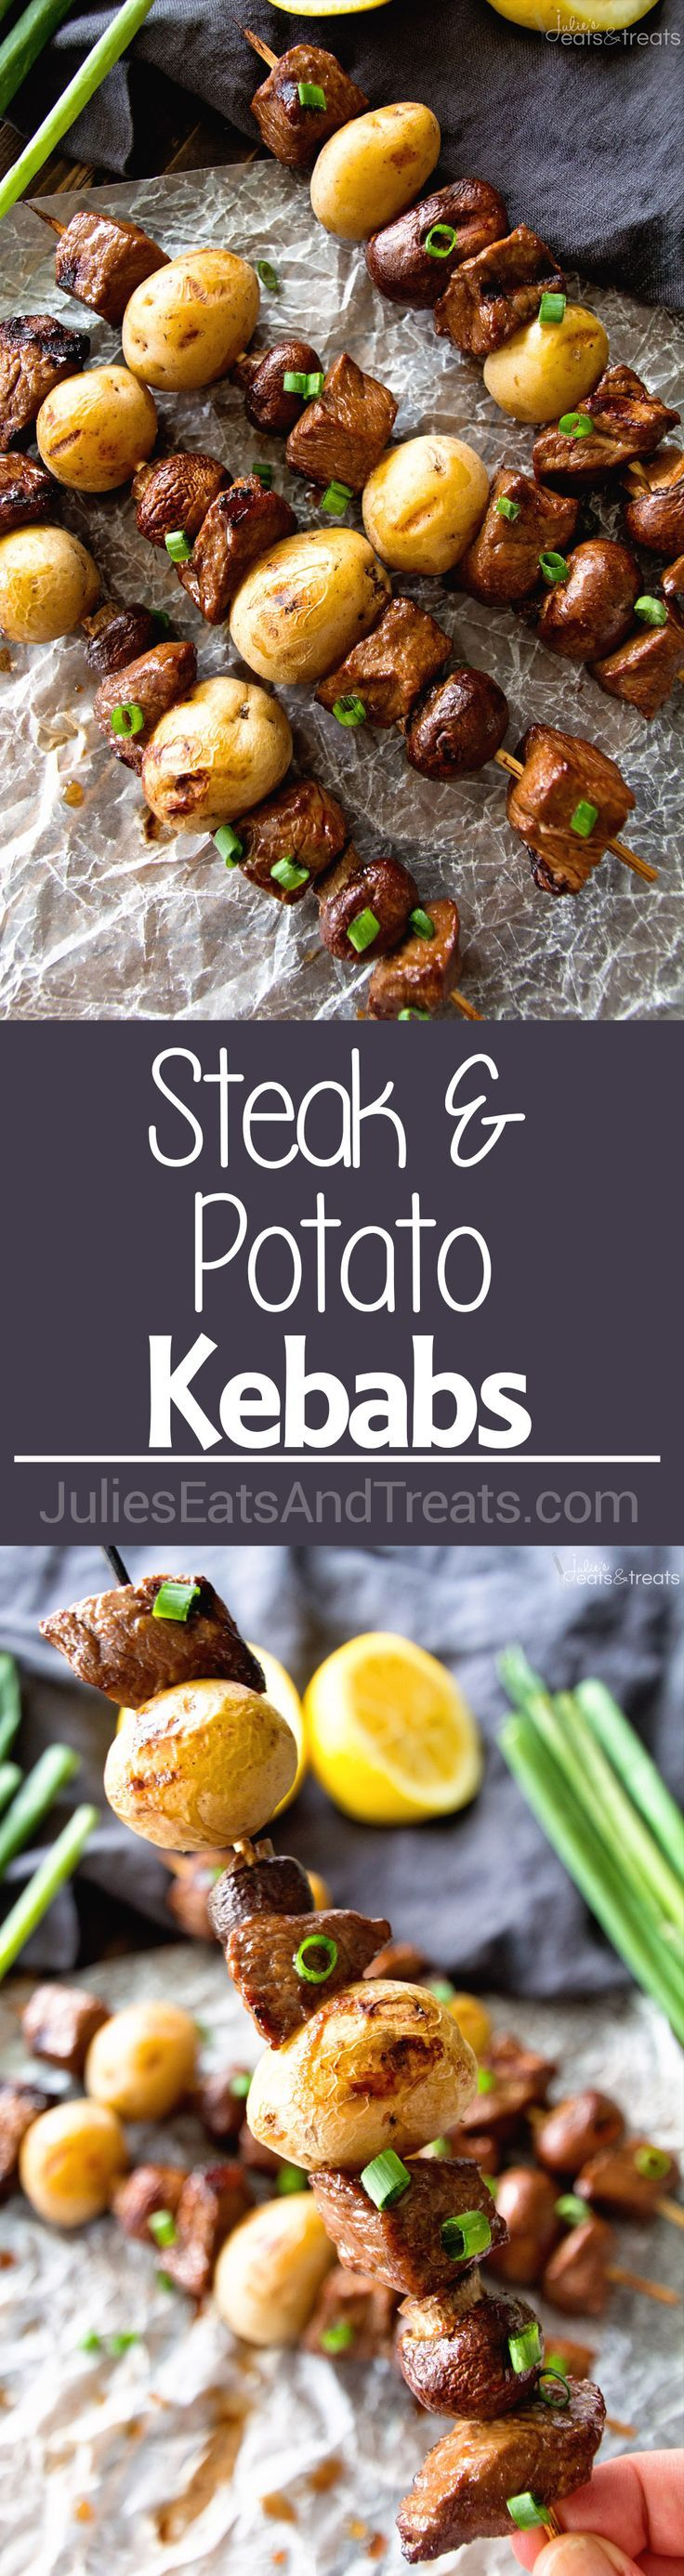 Steak & Potato Kebabs Recipe ~ Tender, Juicy Marinated Steak and Button Mushrooms with Yukon Gold Potatoes Served on a Kebab and Grilled to Perfection!